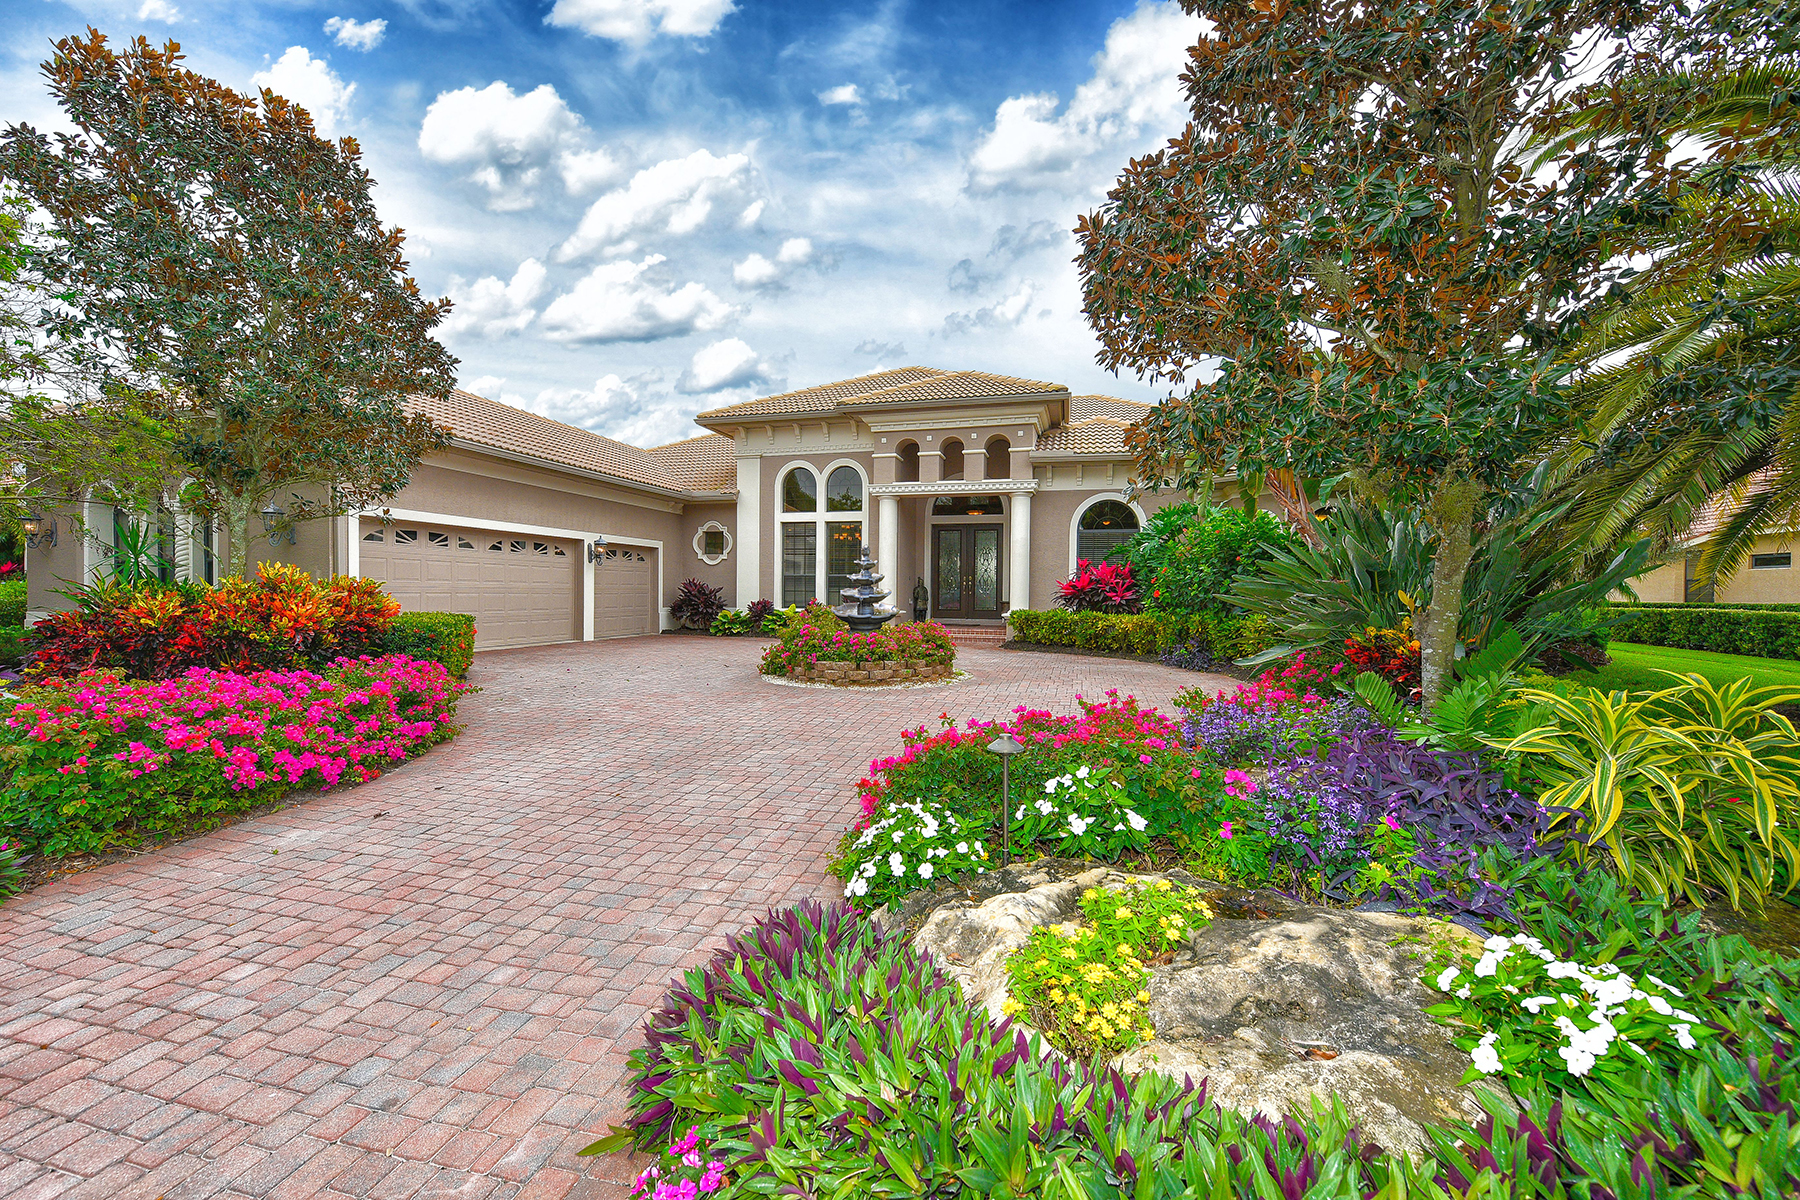 Single Family Home for Sale at SILVER OAK 5312 Hunt Club Way Sarasota, Florida, 34238 United States